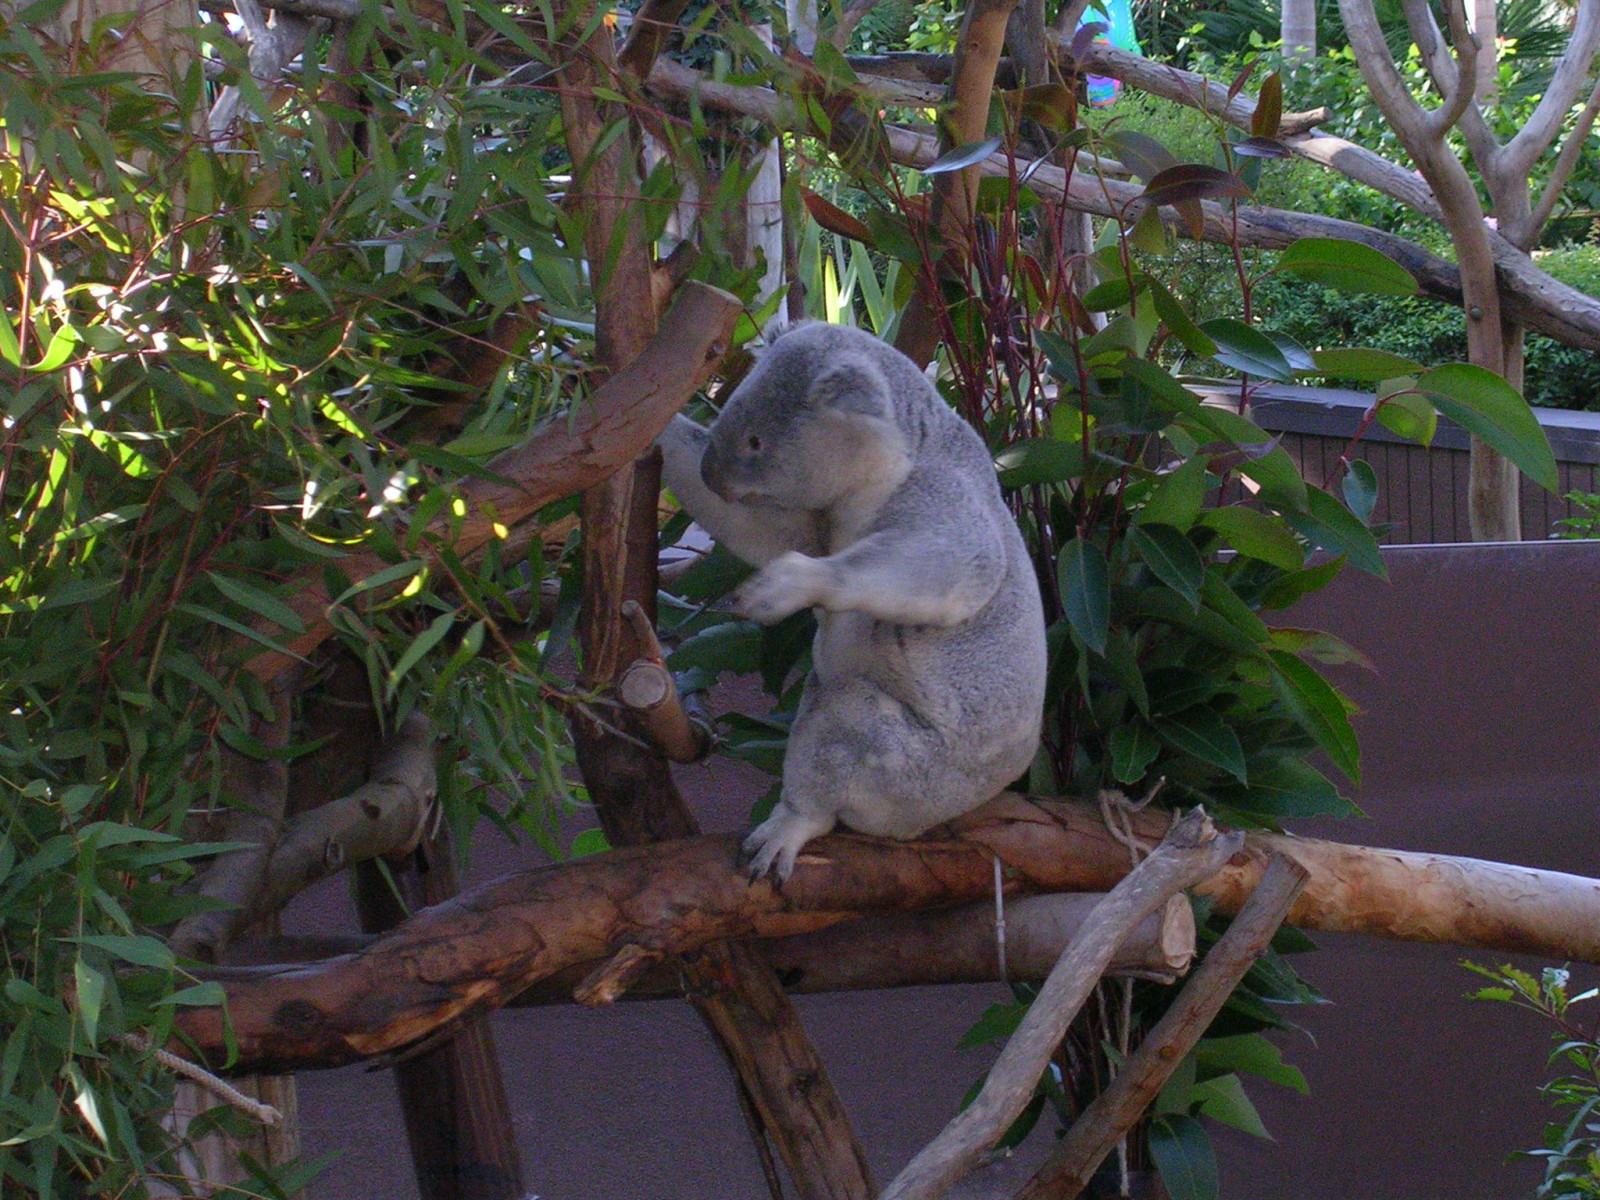 Koala Bear at San Diego Zoo